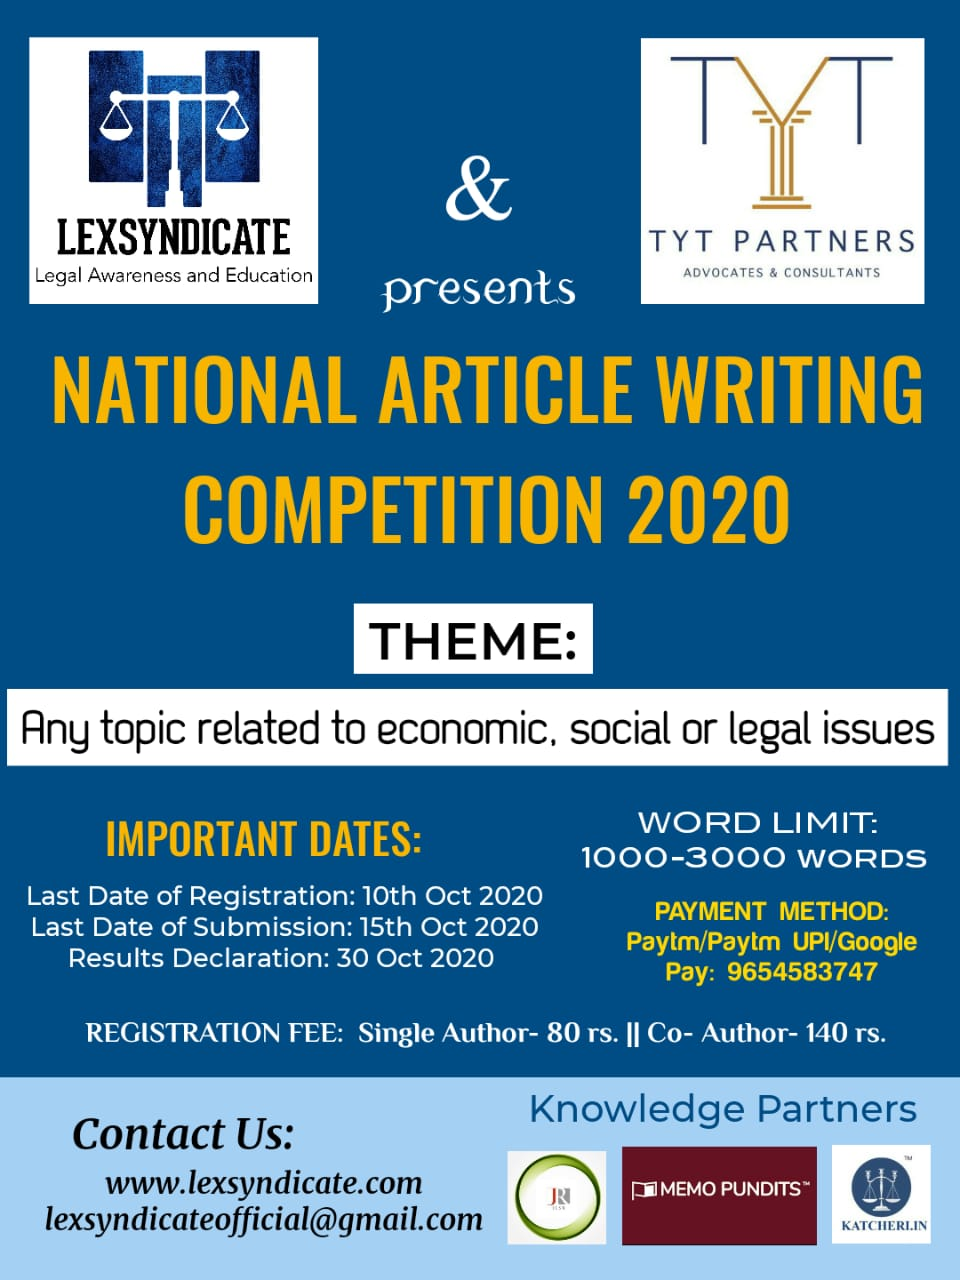 National Article Writing Competition by LEXSYNDICATE